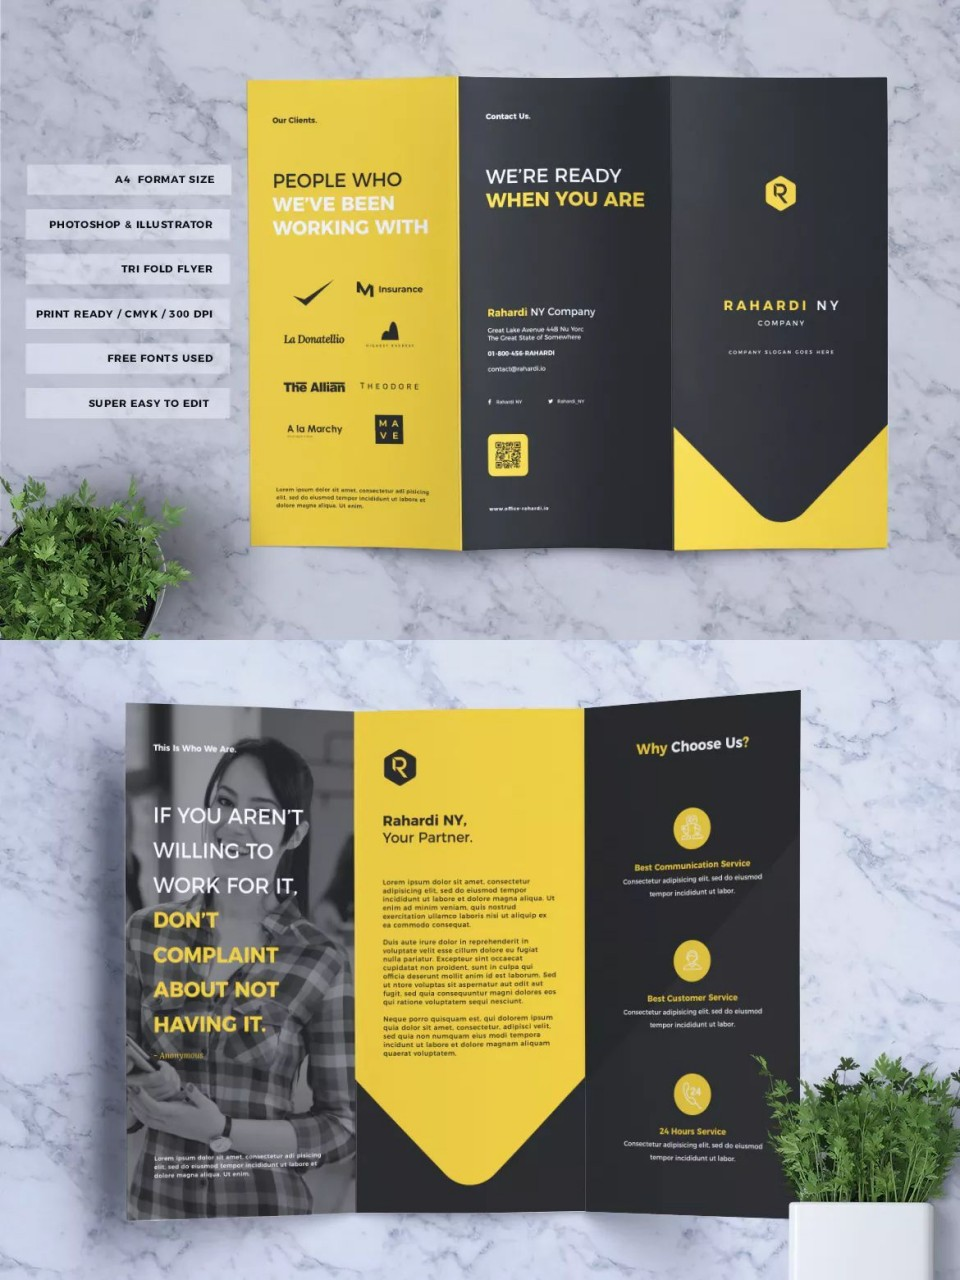 003 Shocking Photoshop Brochure Template Psd Free Download Inspiration 960